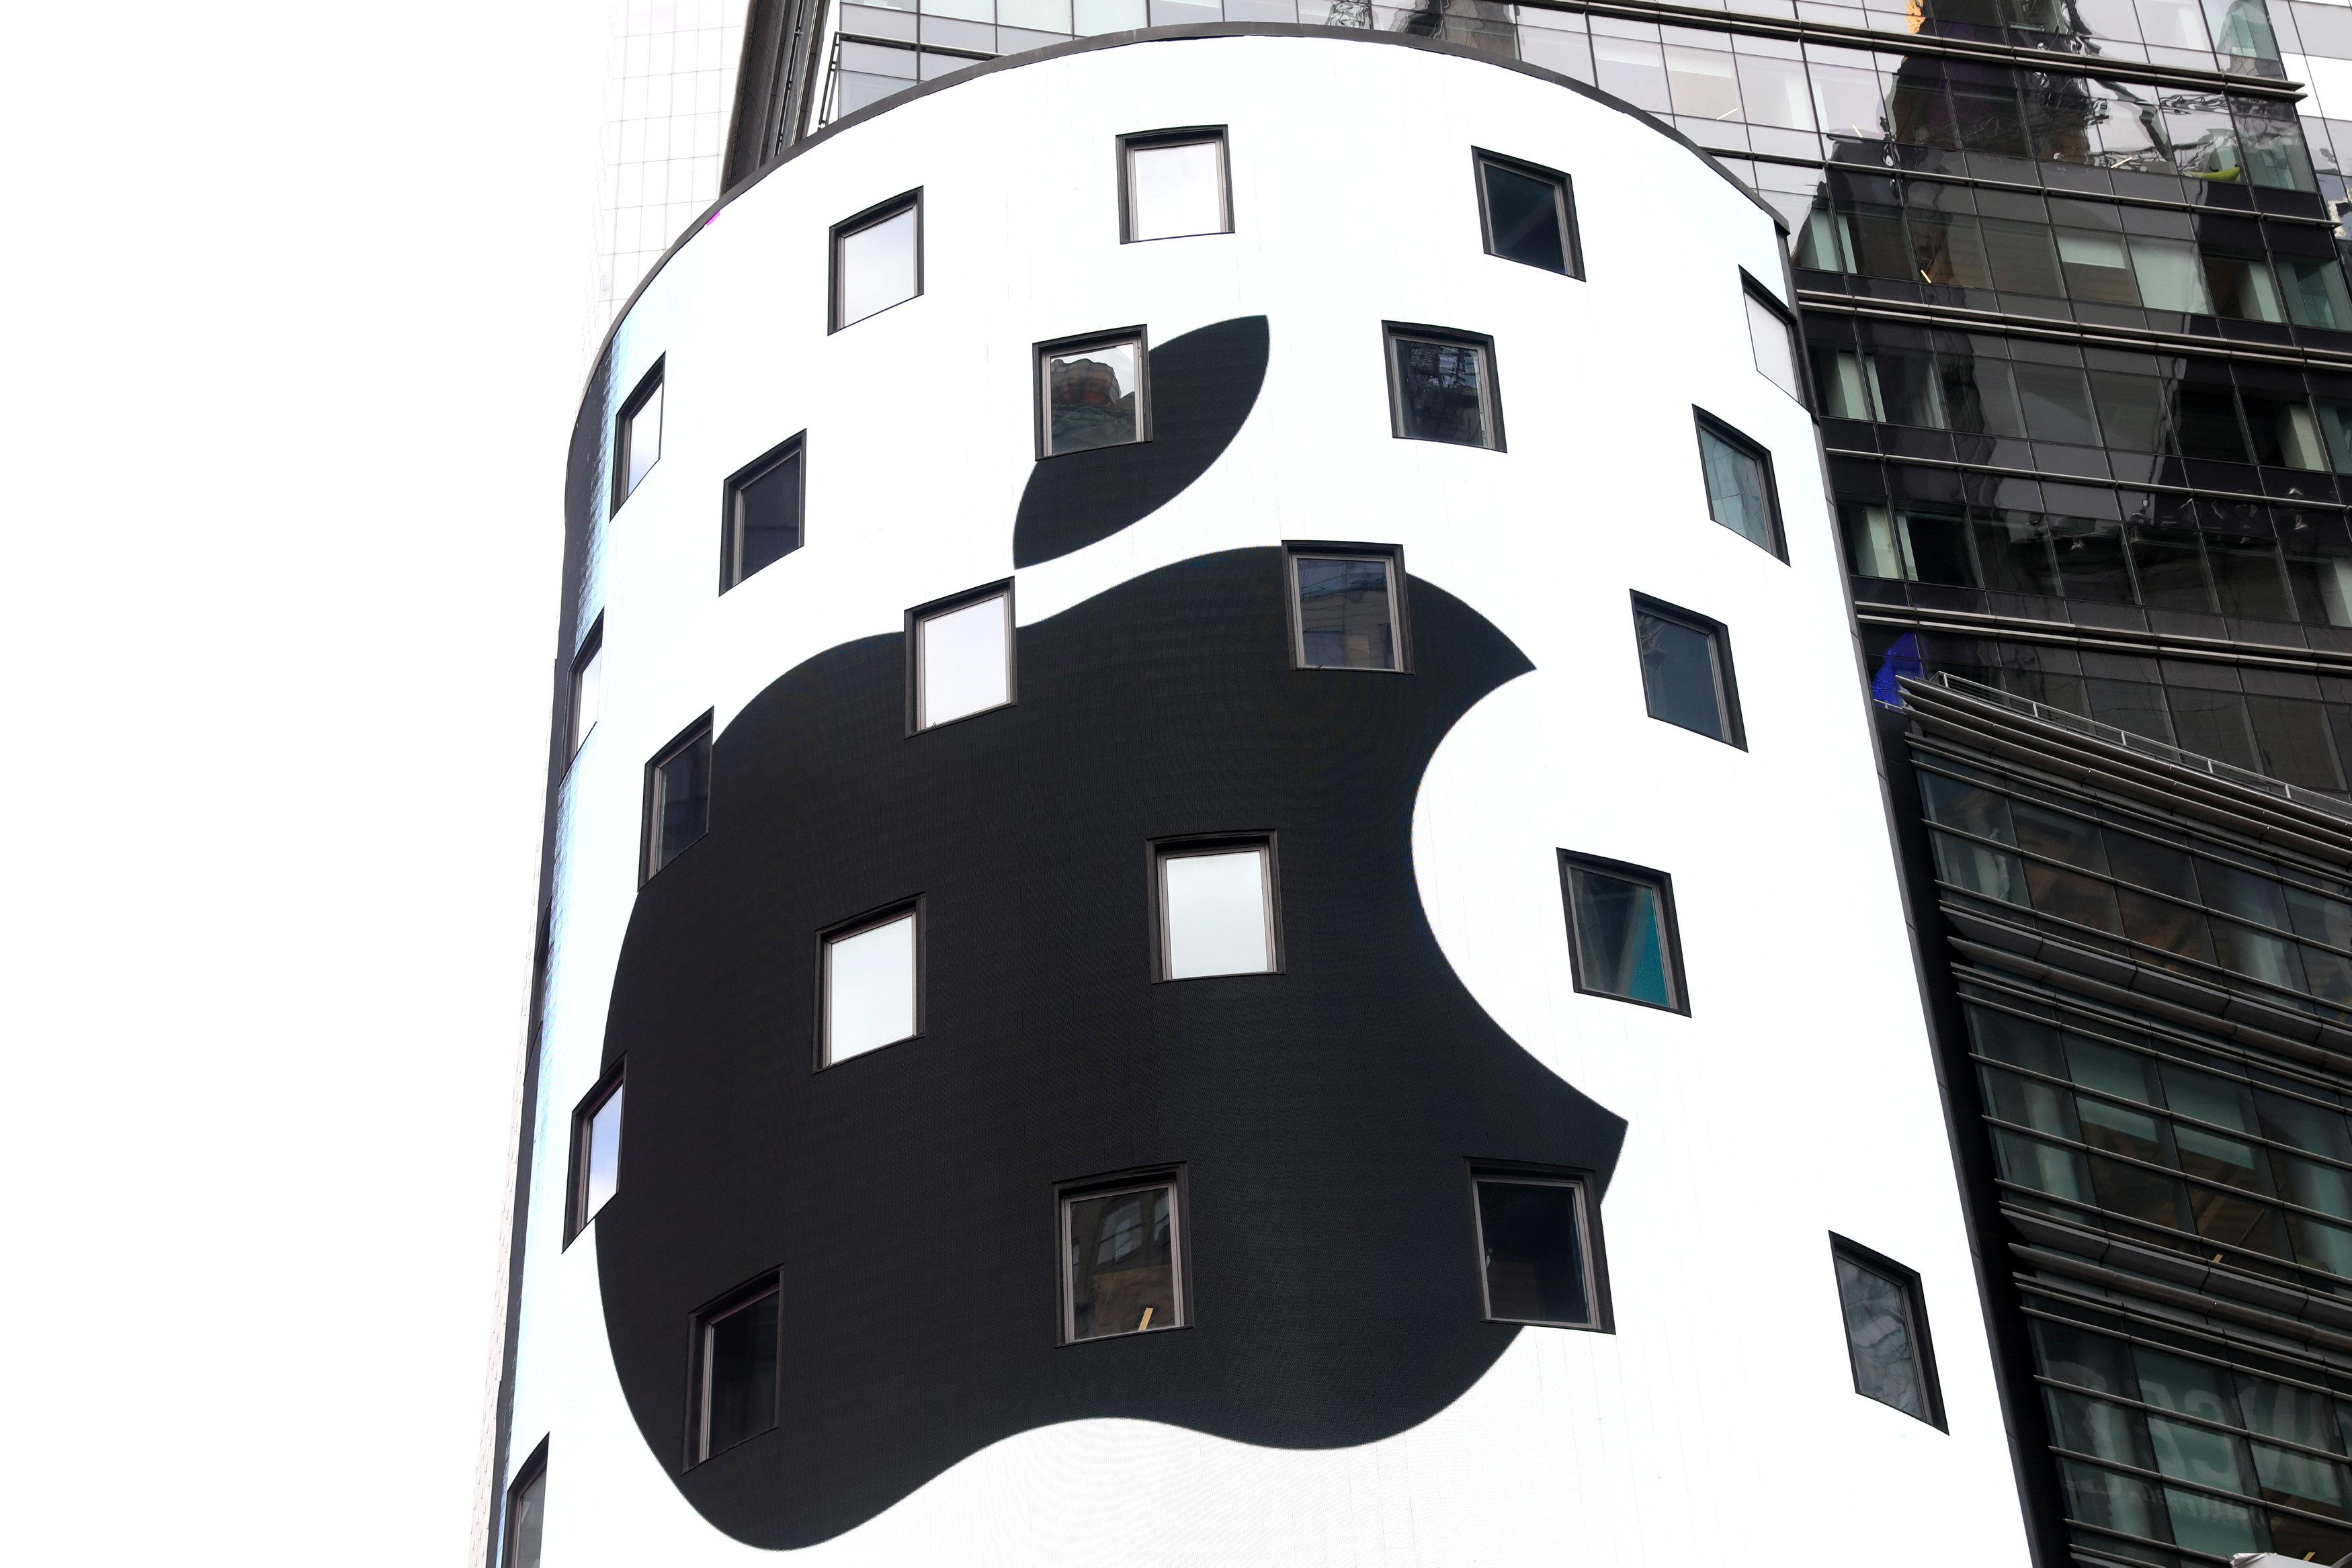 An electronic screen displays the Apple Inc. logo on the exterior of the Nasdaq Market Site following the close of the day's trading session in New York City, New York, U.S., August 2, 2018. Mike Segar